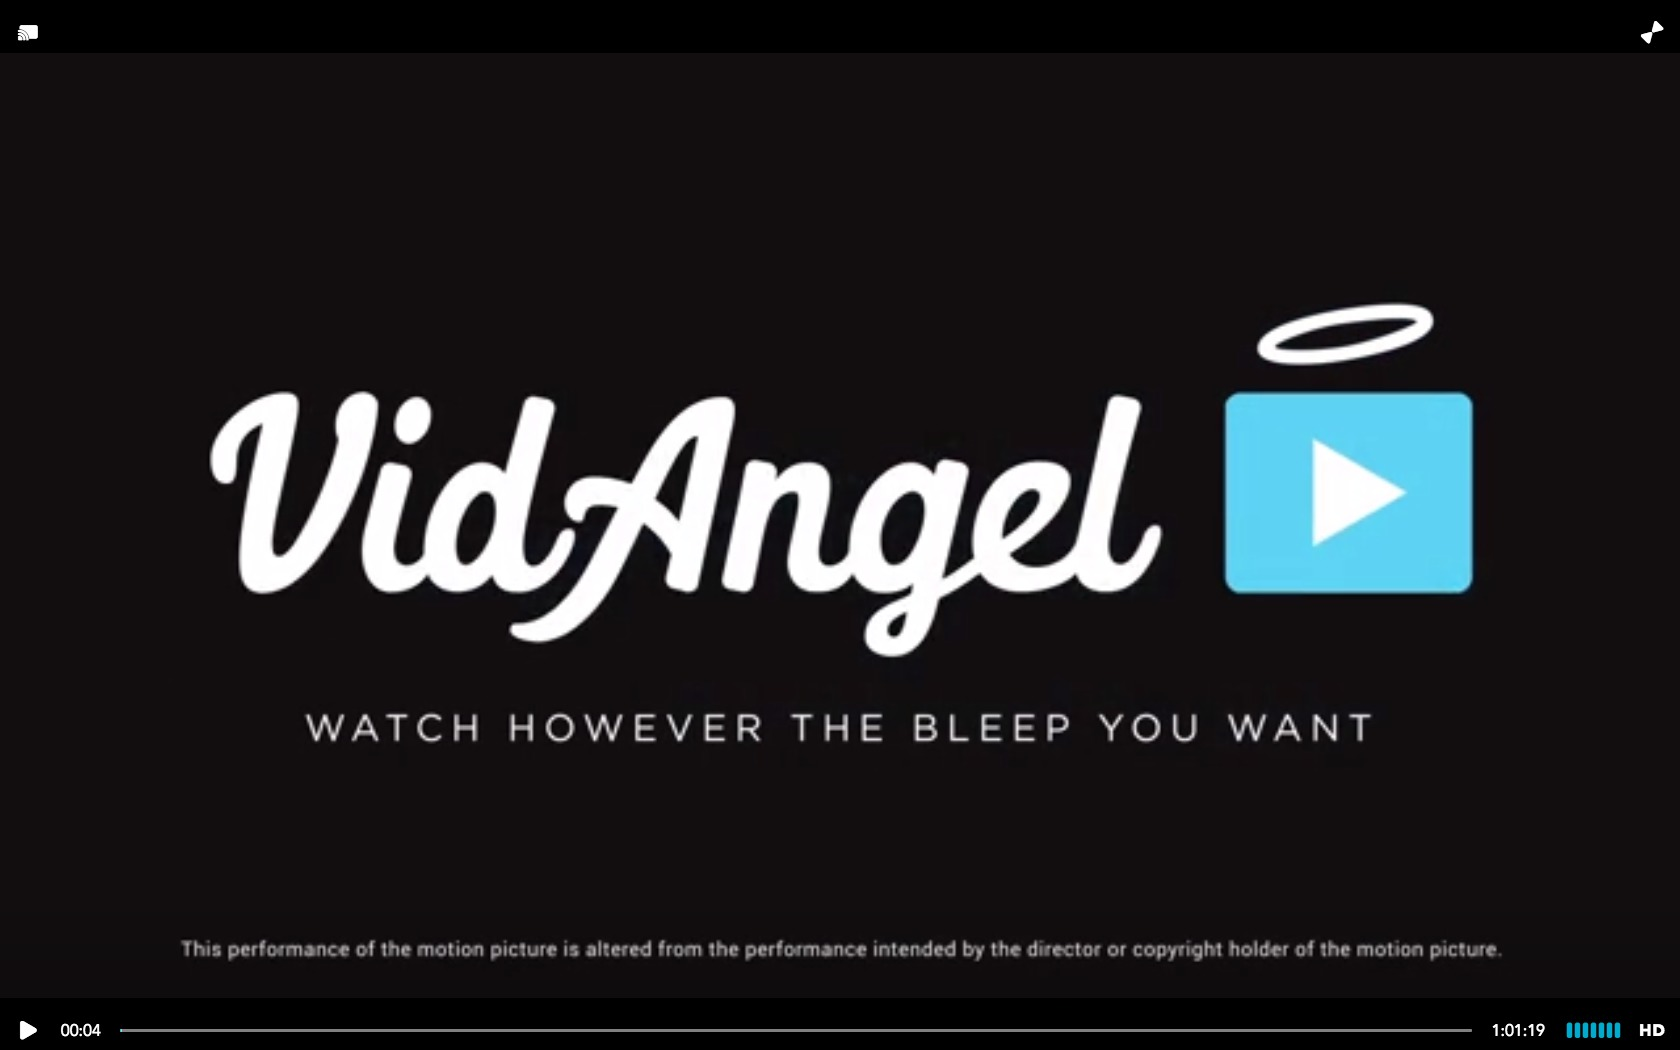 Why is the innovating family-friendly movie filtering company now facing facing $62 million in damages for copyright infringement? Here's a look back at how VidAngel got here.